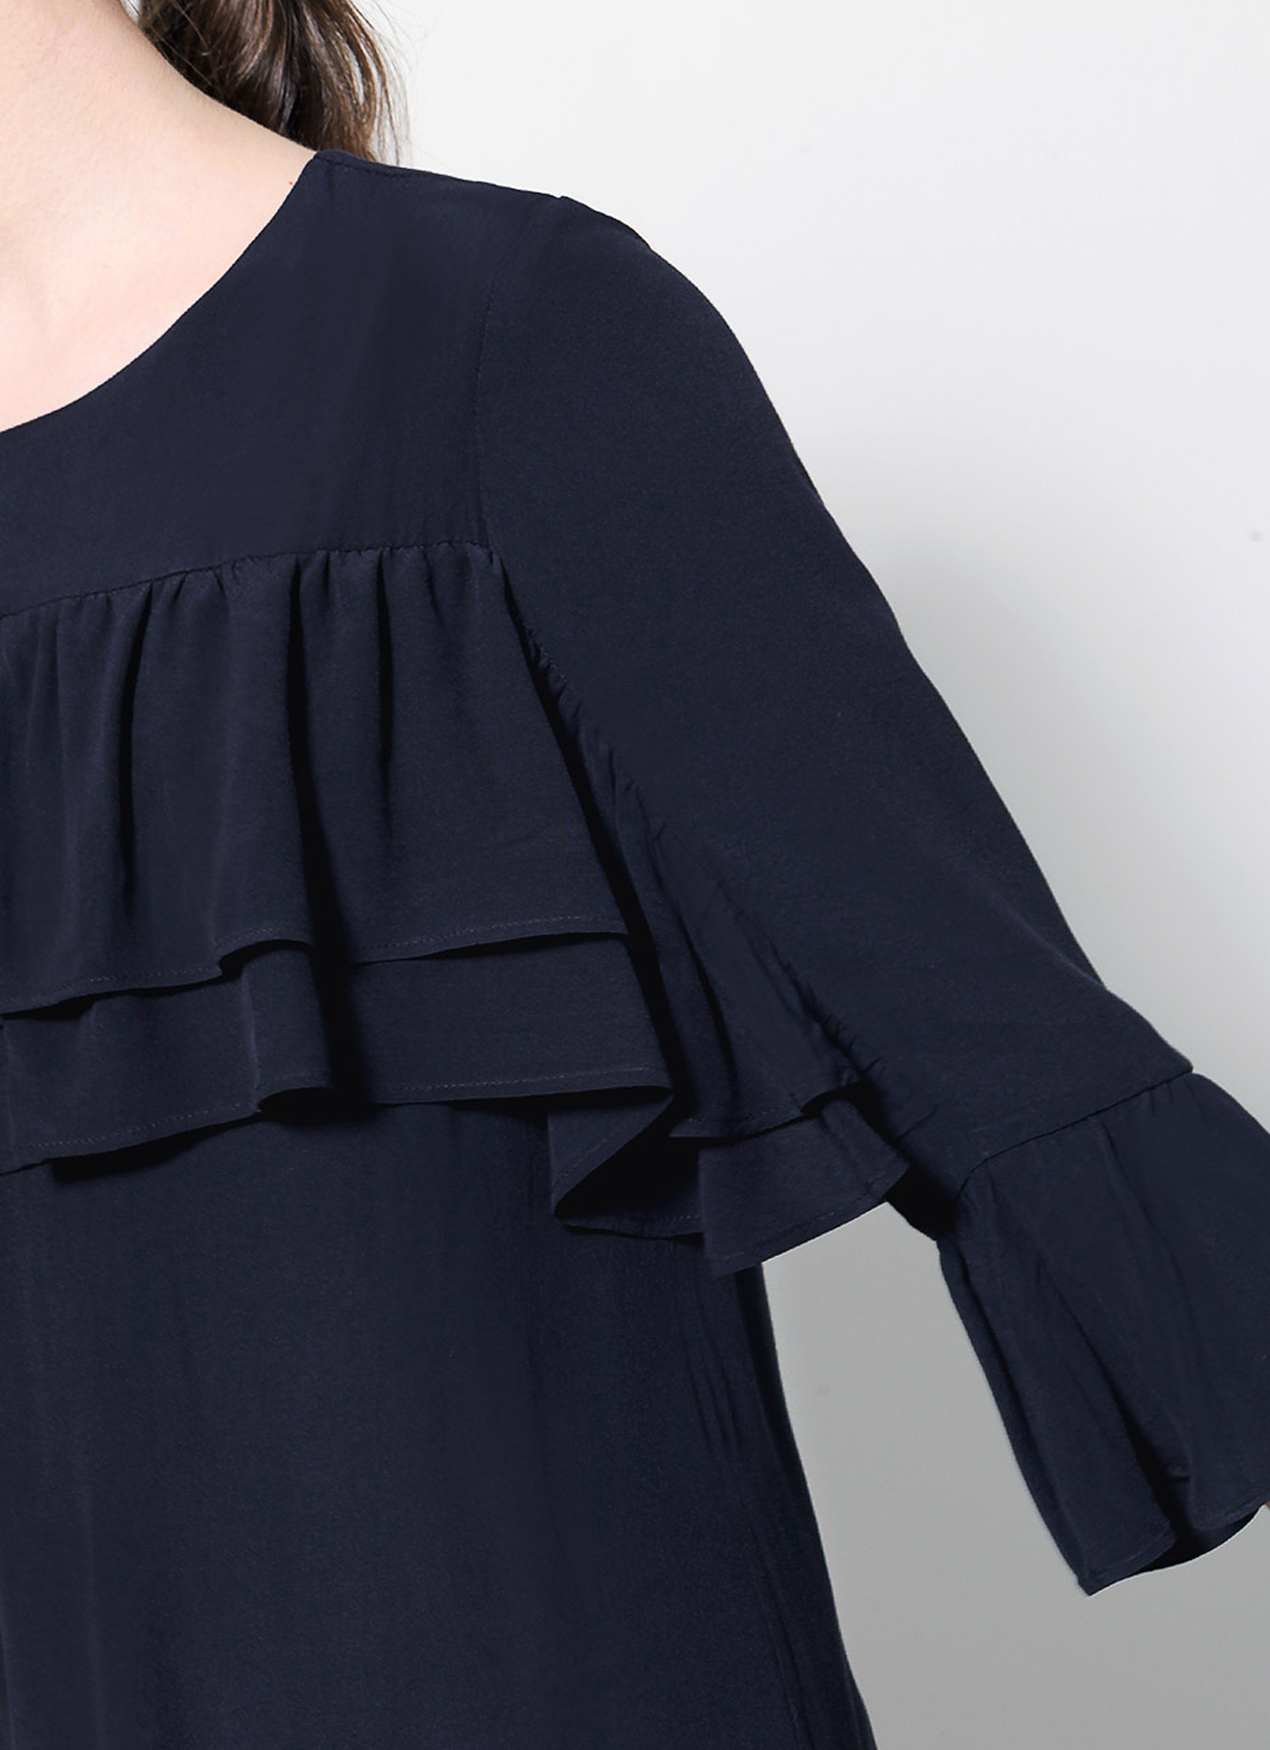 Saturday Club Navy Shift Dress With Gathered Bust Overlay